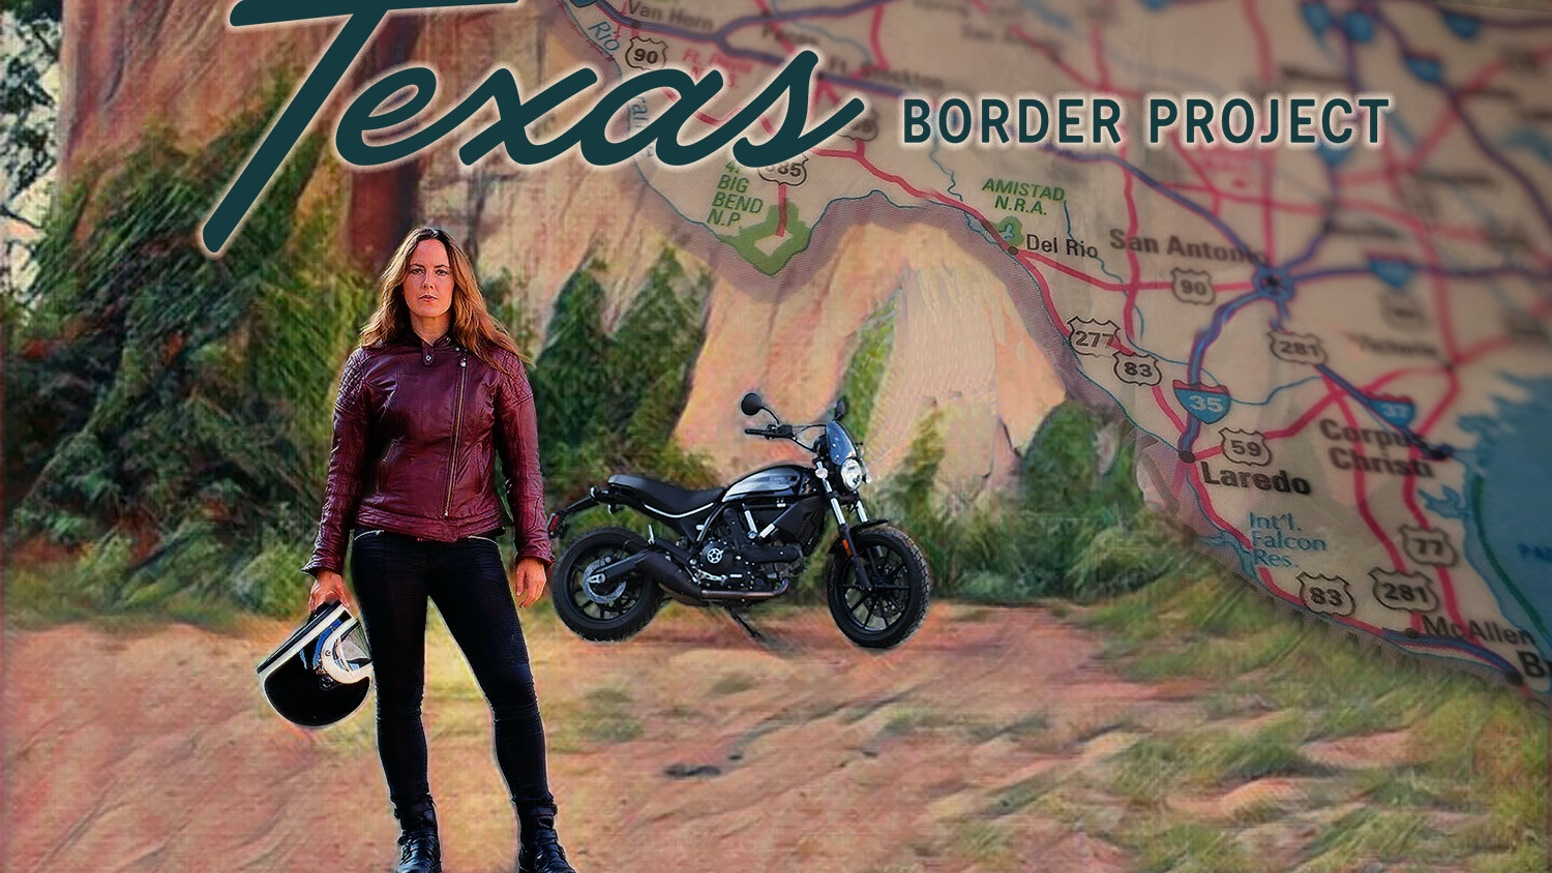 March 19, 2018: Aimee Bobruk is riding a motorcycle along the Texas/Mexico border and making a documentary film.